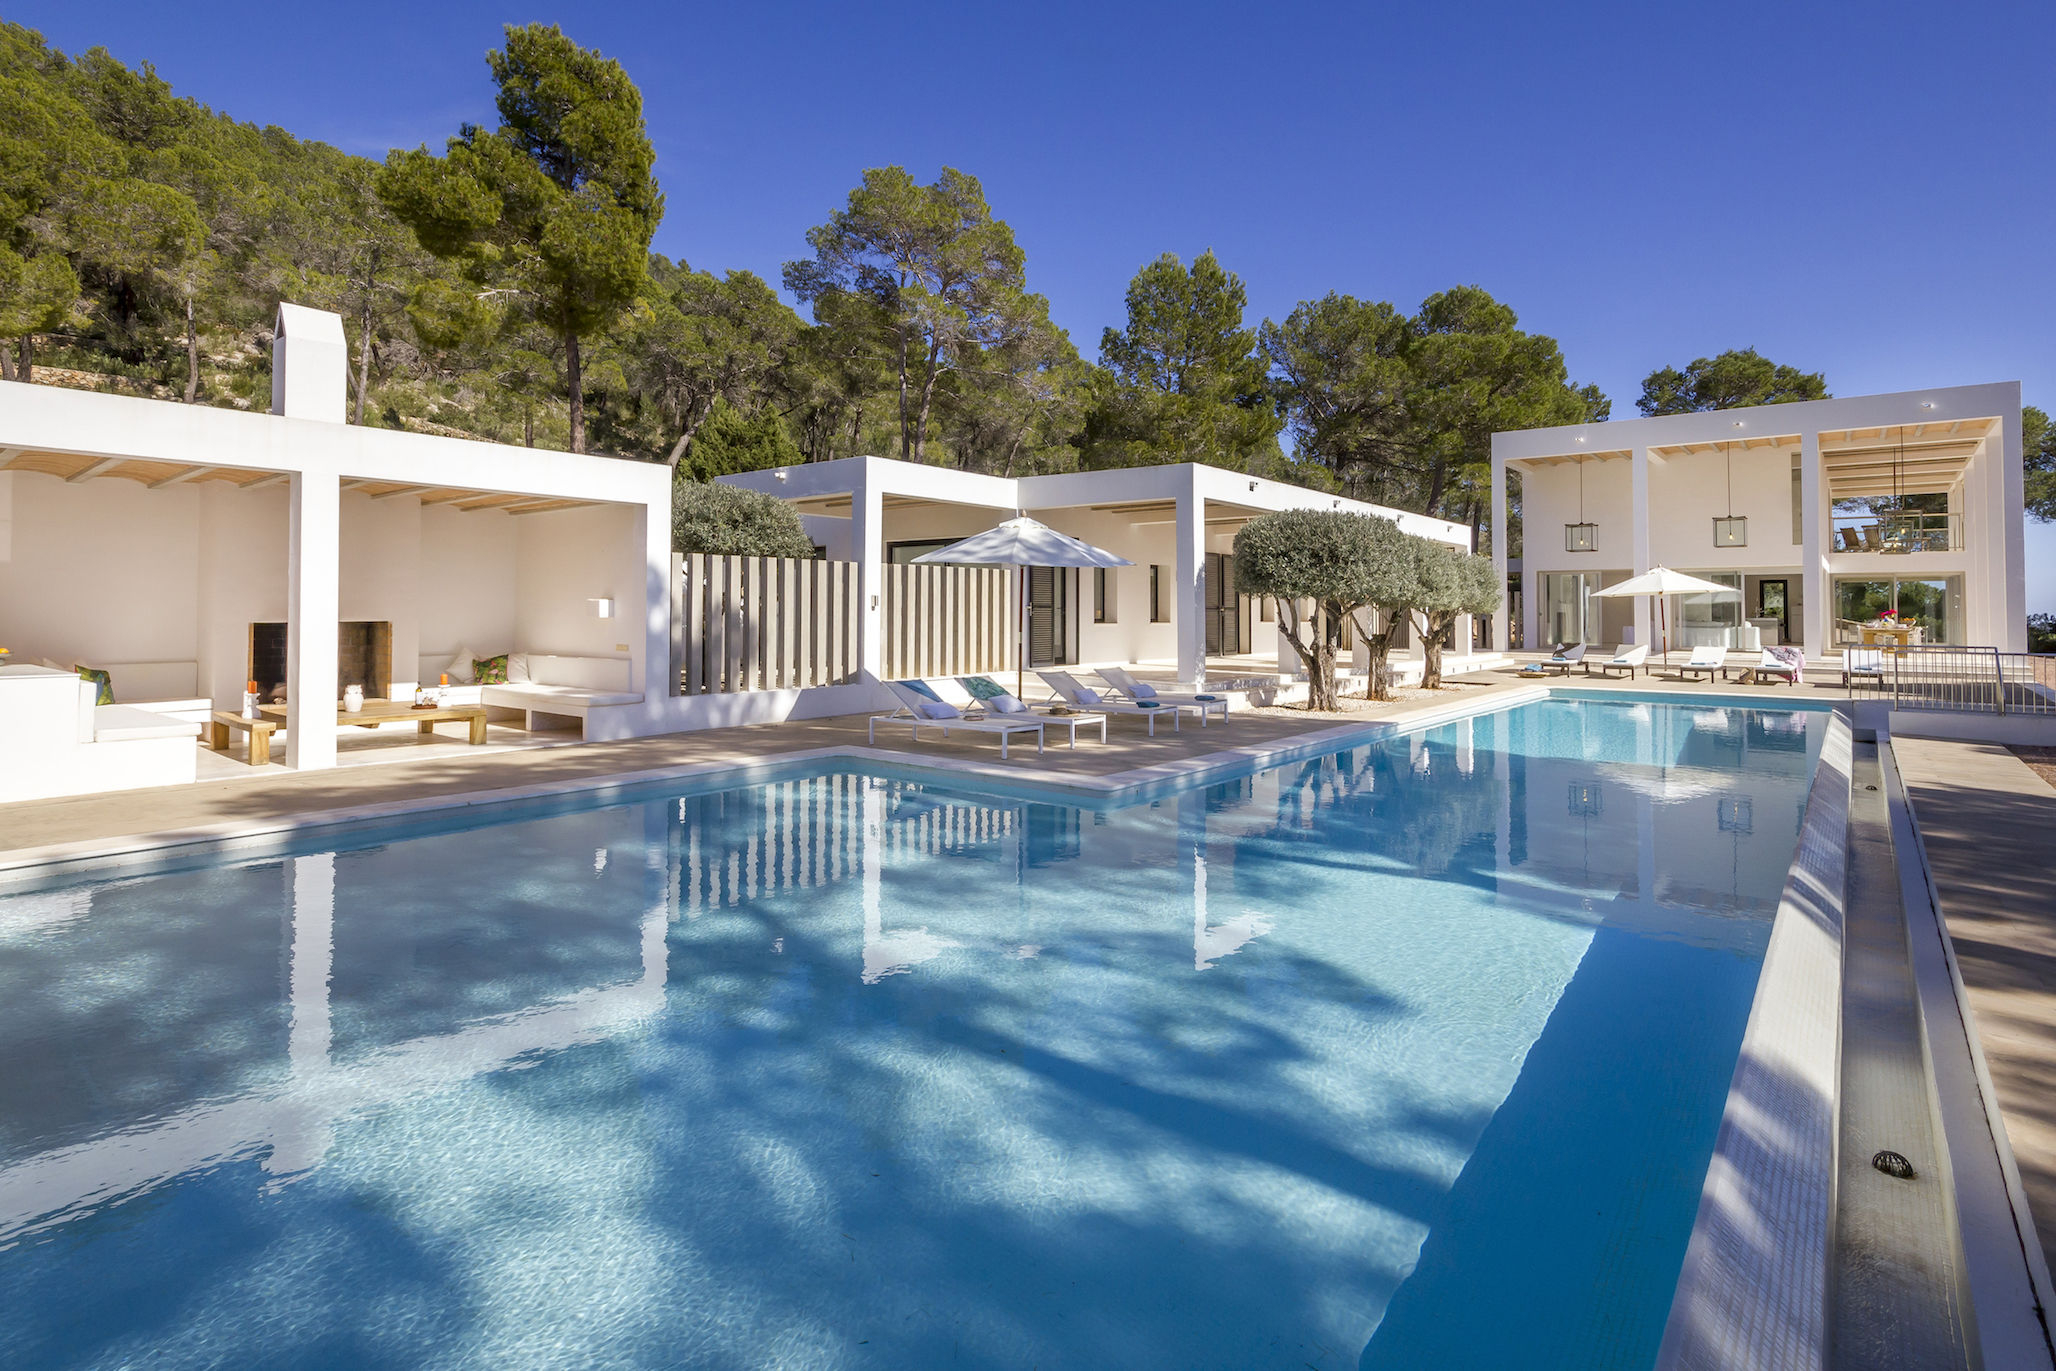 Luxury vacation rentals europe - Spain - Balearic islands ibiza - Santllorencdebalafia - Can Morna Laurana - Image 1/35